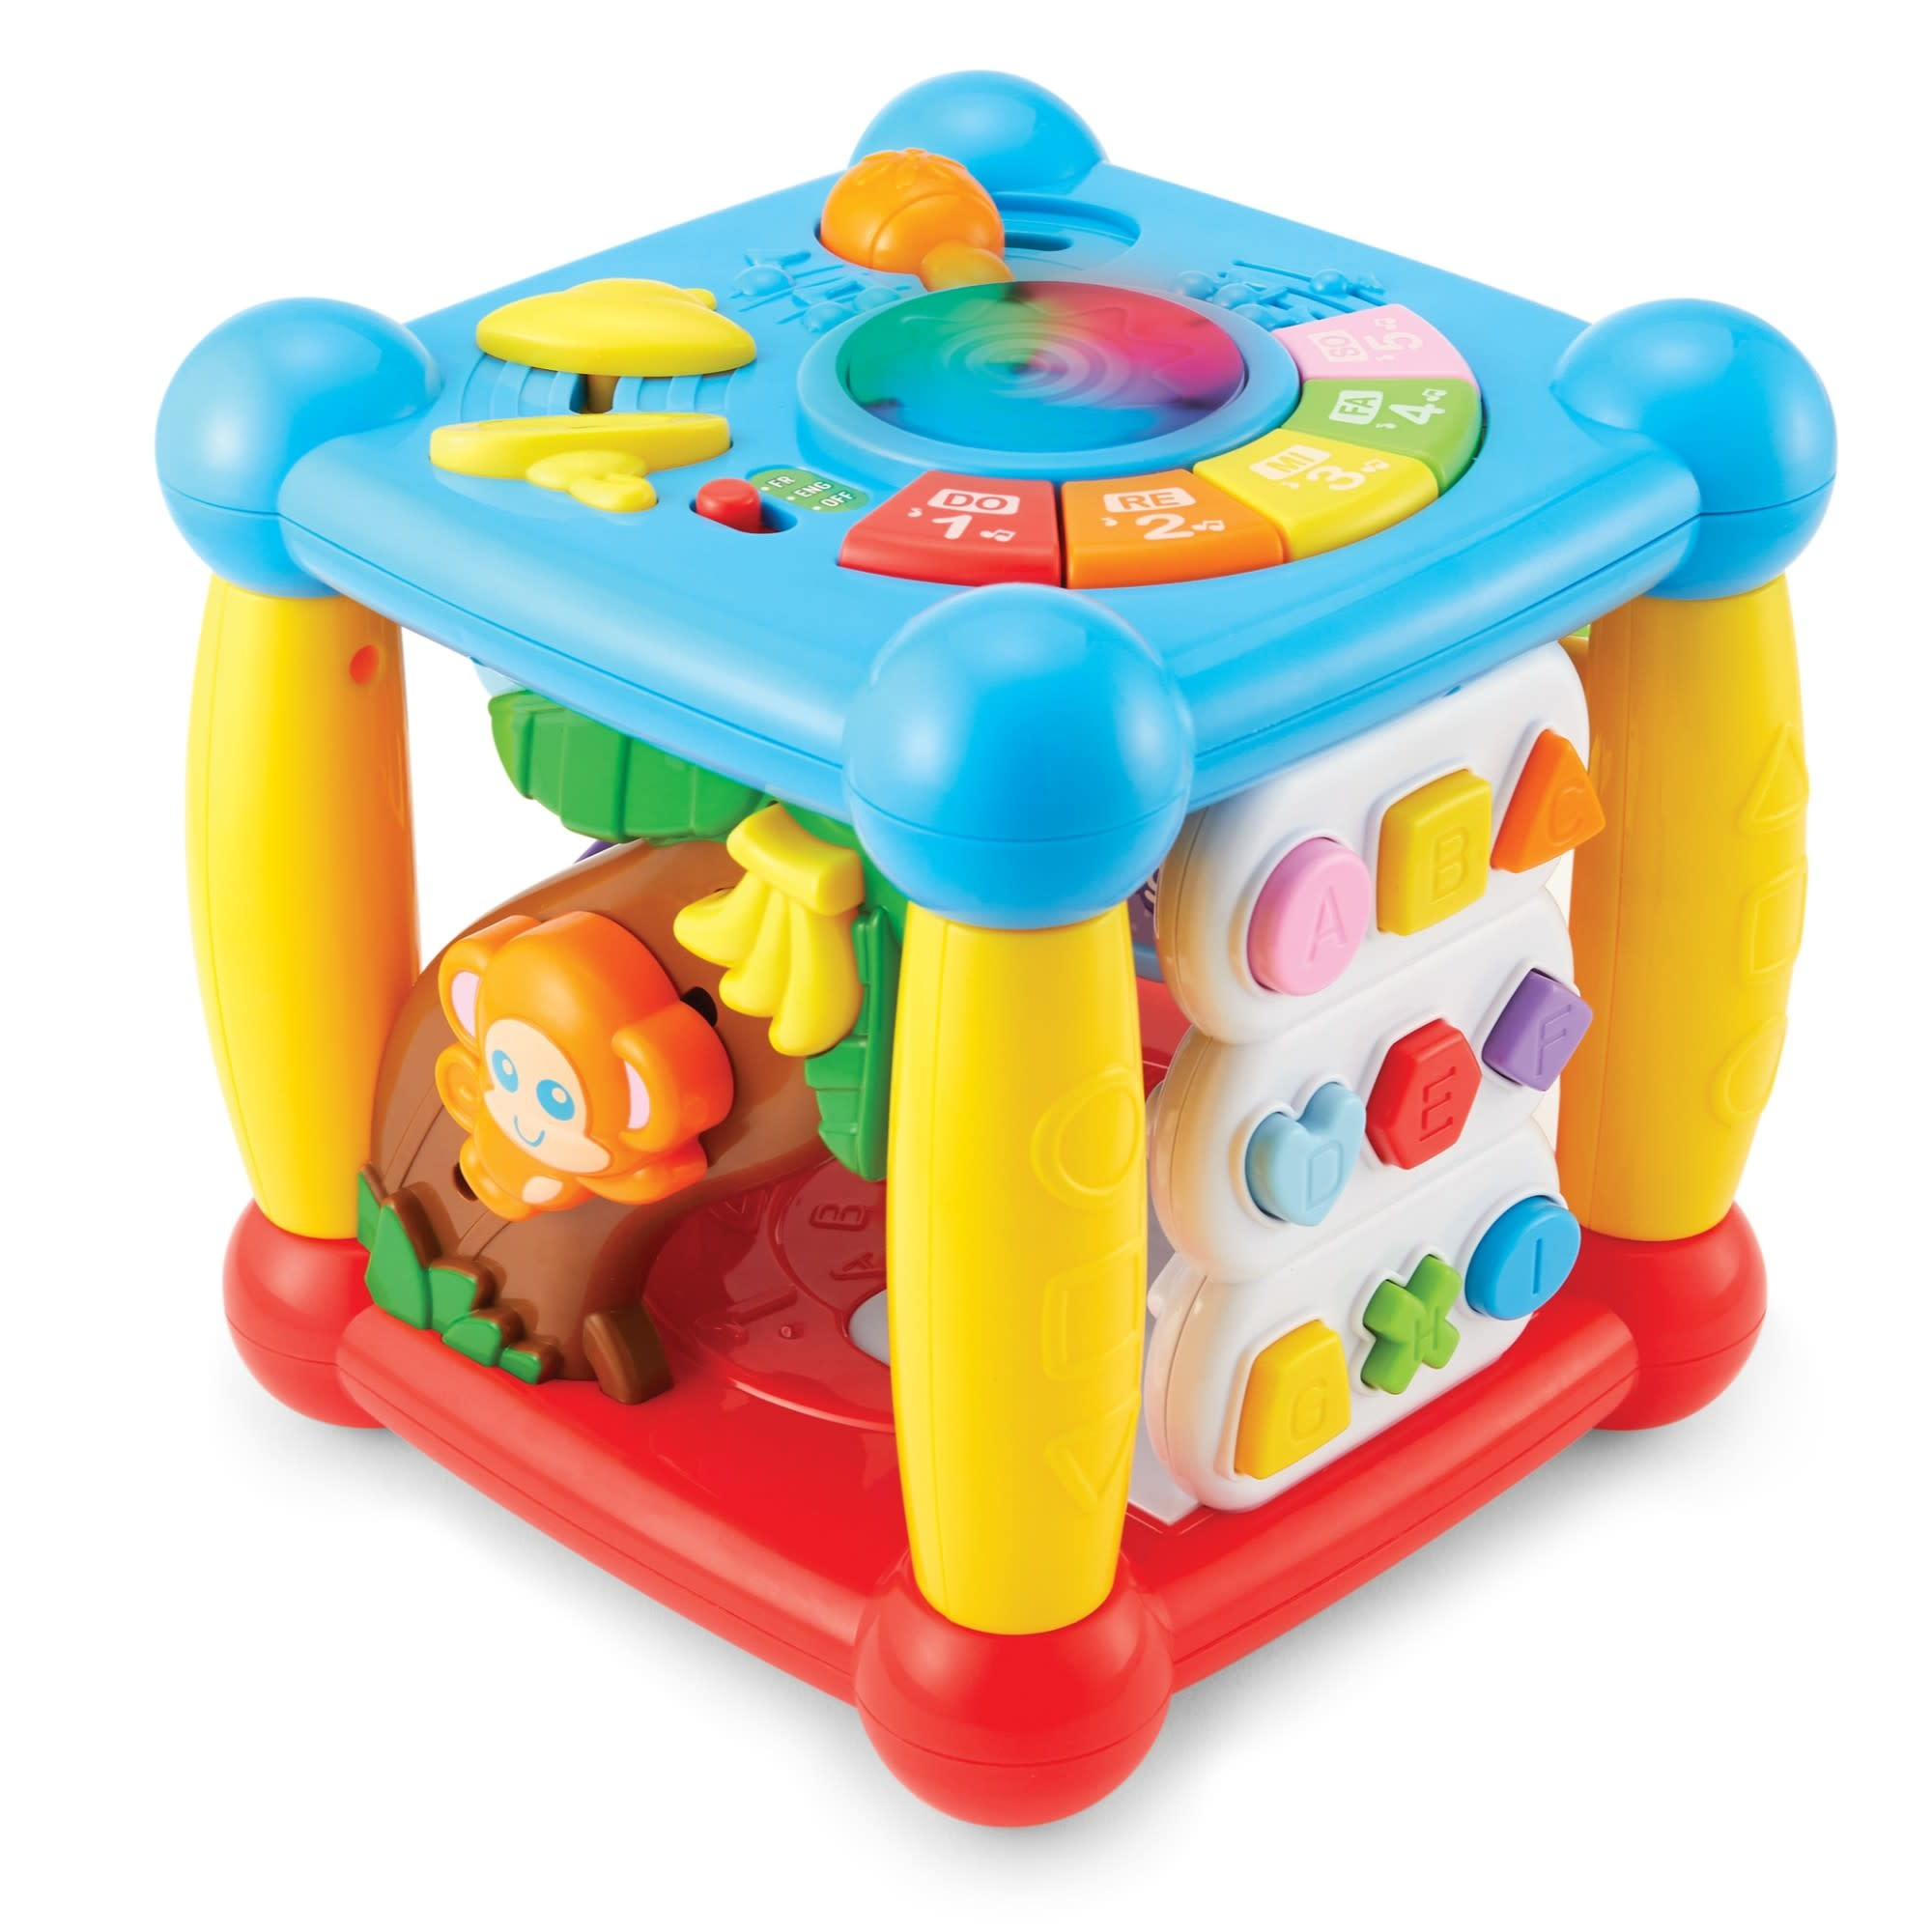 Lights 'n Sounds Activity Cube by Kidoozie